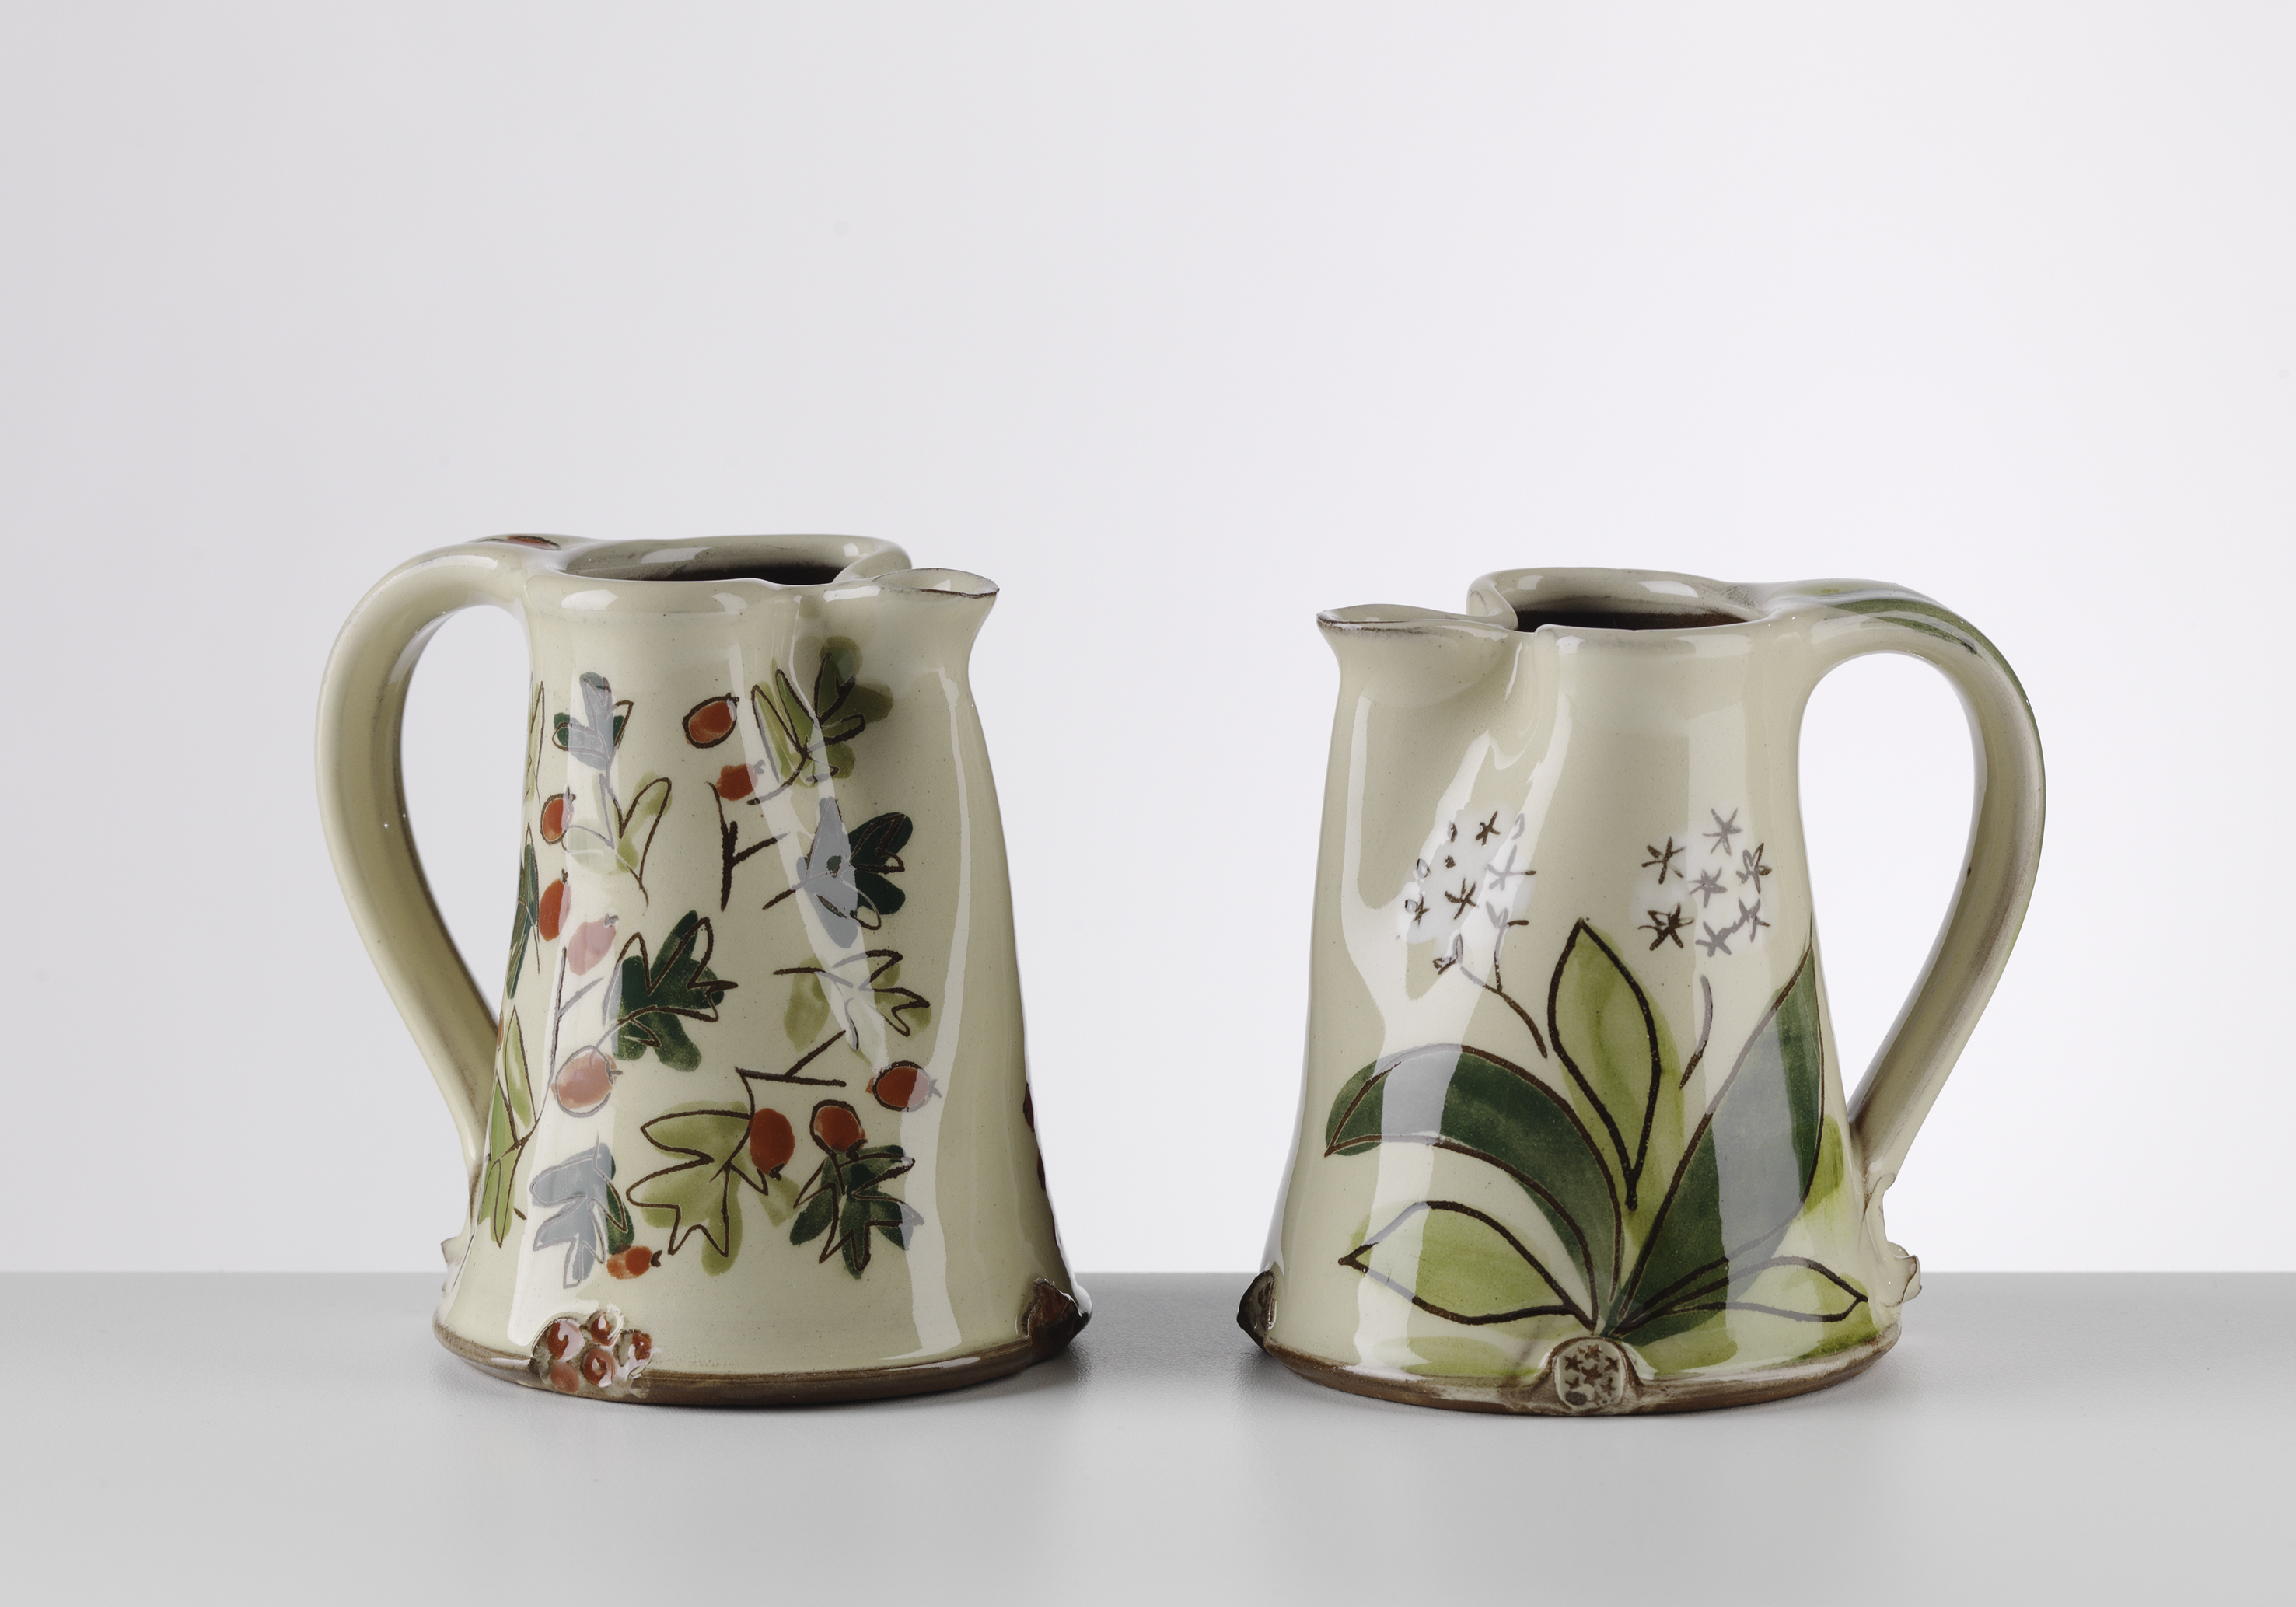 Small jugs, hawthorn and ramsons